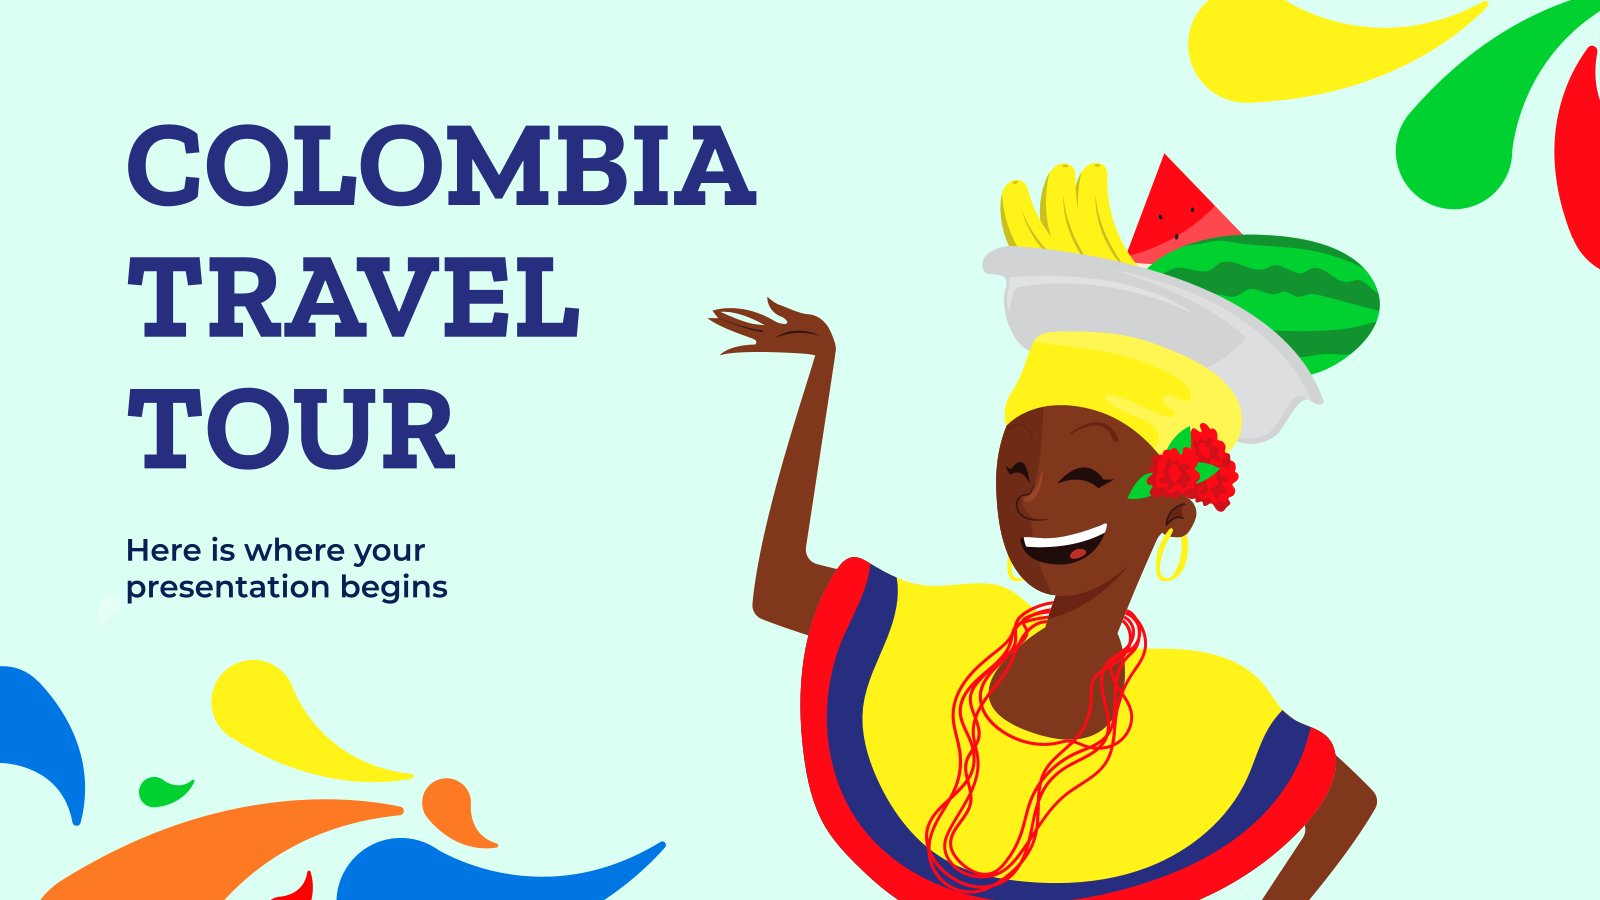 Colombia Travel Tour presentation template